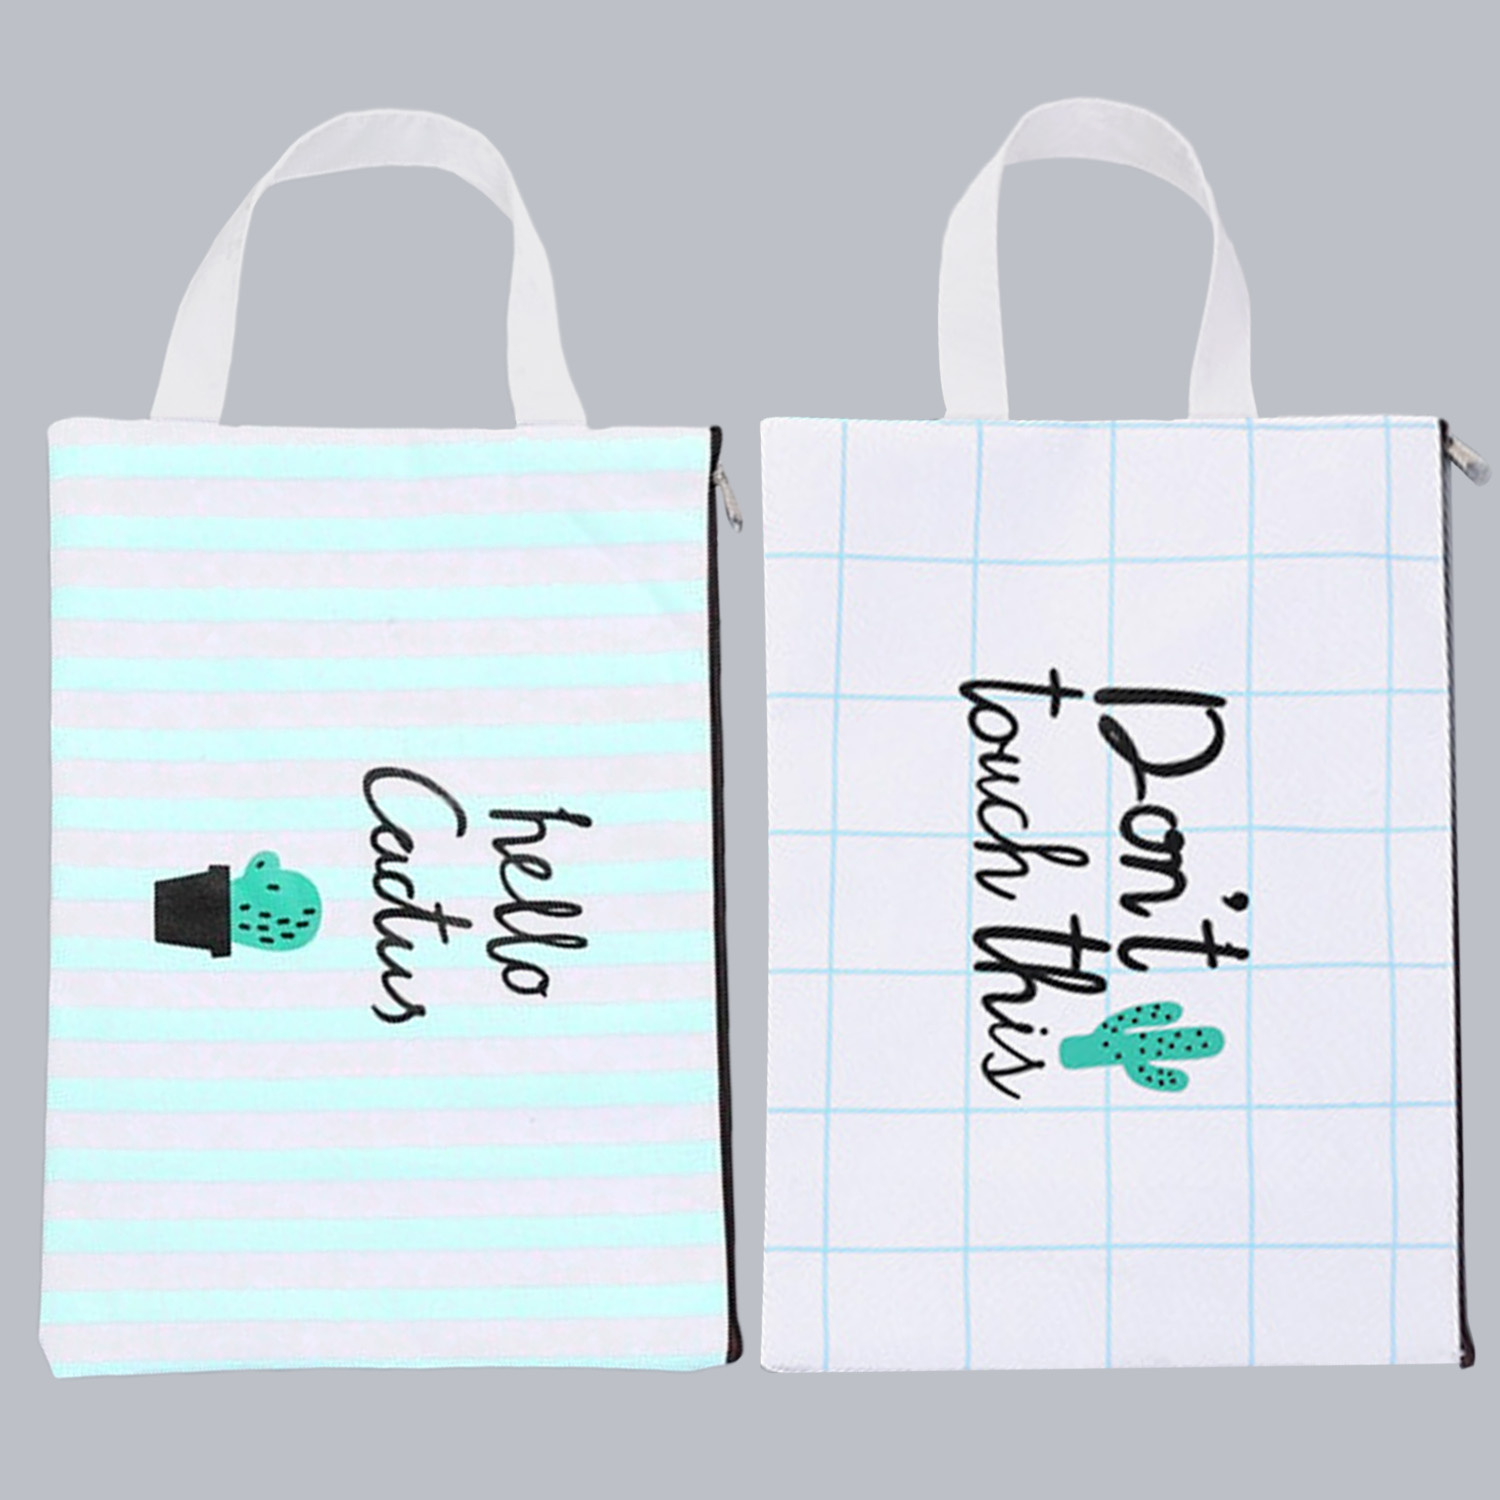 A4 Size Paper Bag Template